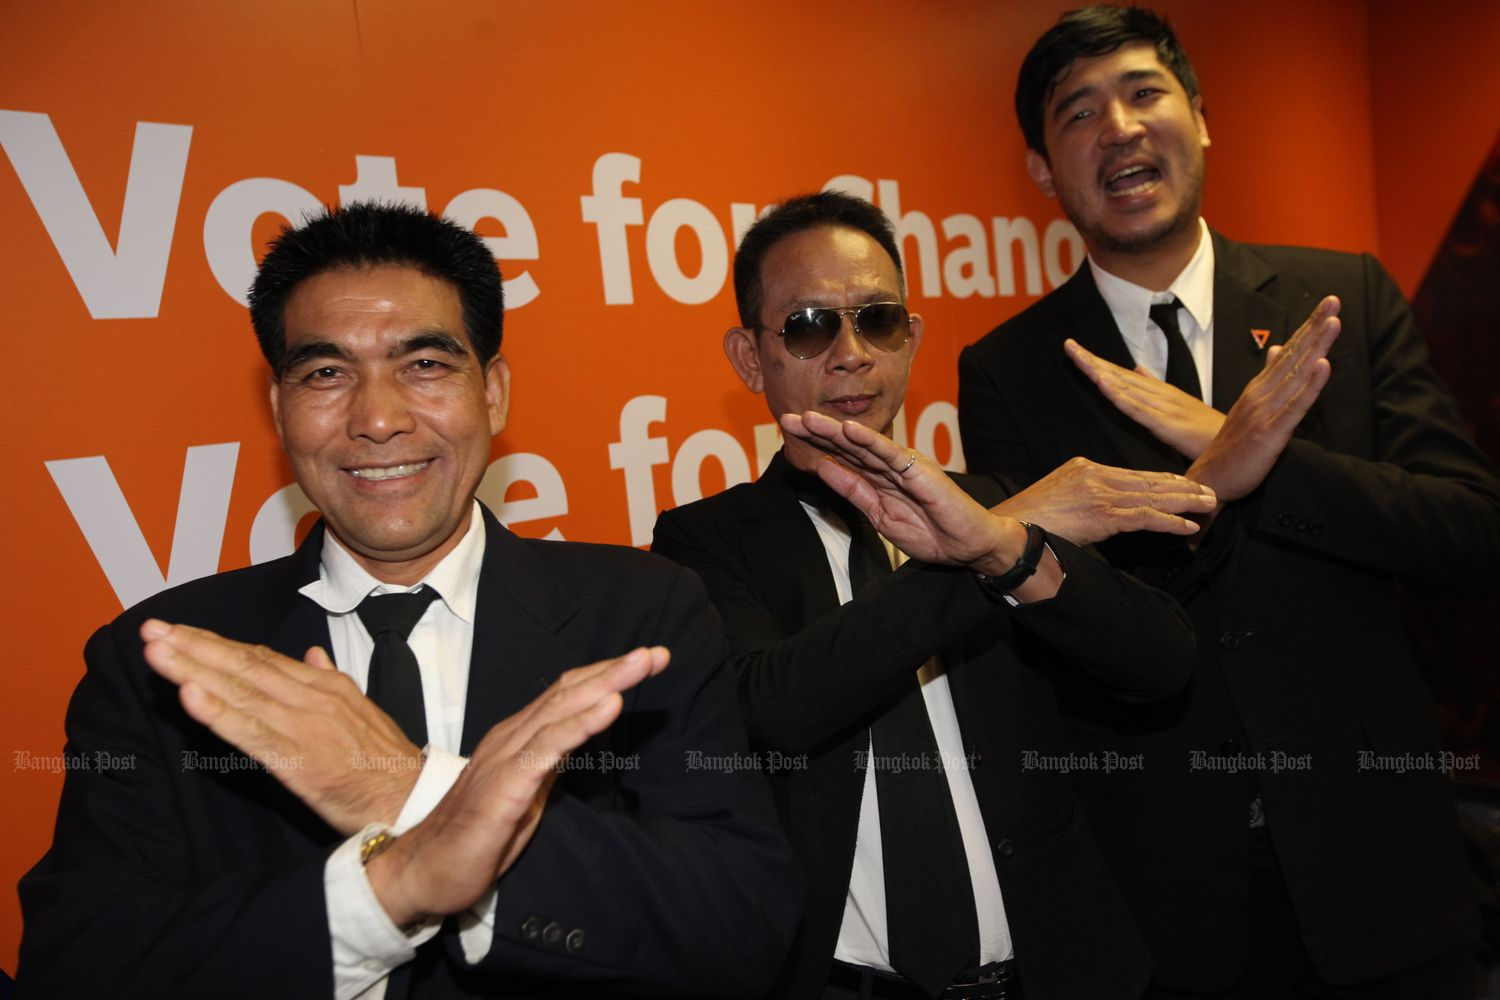 FFP MPs (from left) Thongdaeng Benjapak of Samut Sakhon, Thitinan Sangnak of Khon Kaen and Taopiphop Limjittrakorn of Bangkok gesture after they join a briefing to disclose how they were approached to vote for Gen Prayut Chan-o-cha as PM on Tuesday. (Photo by Wichan Charoenkiatpakul)